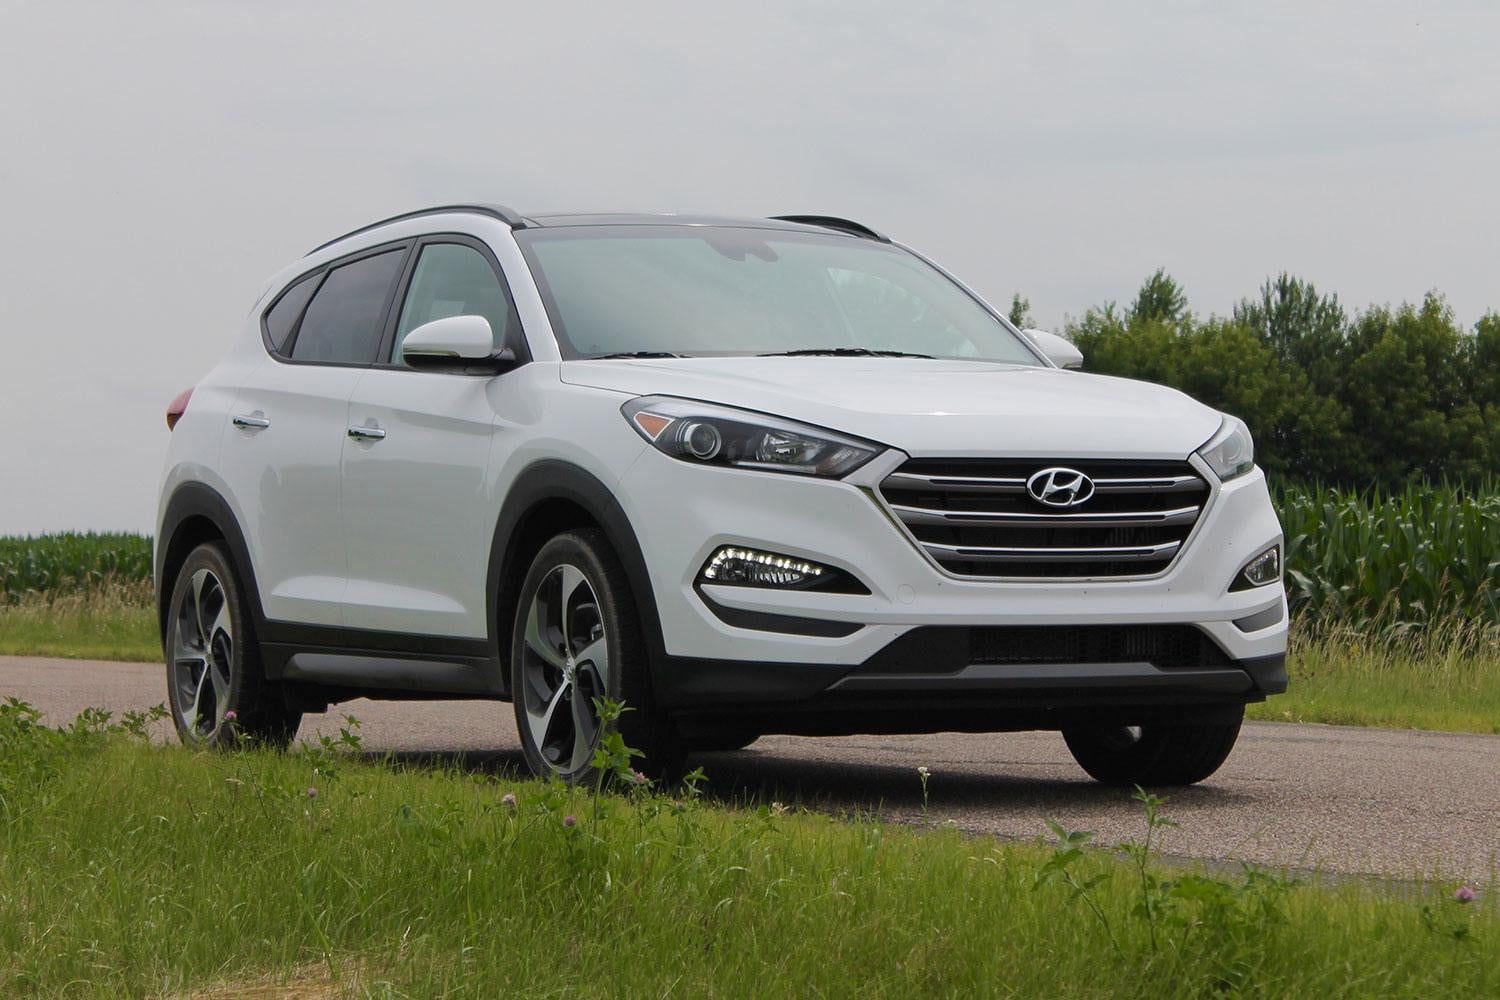 tucson review photo drive and s reviews fwd se original car hyundai driver first